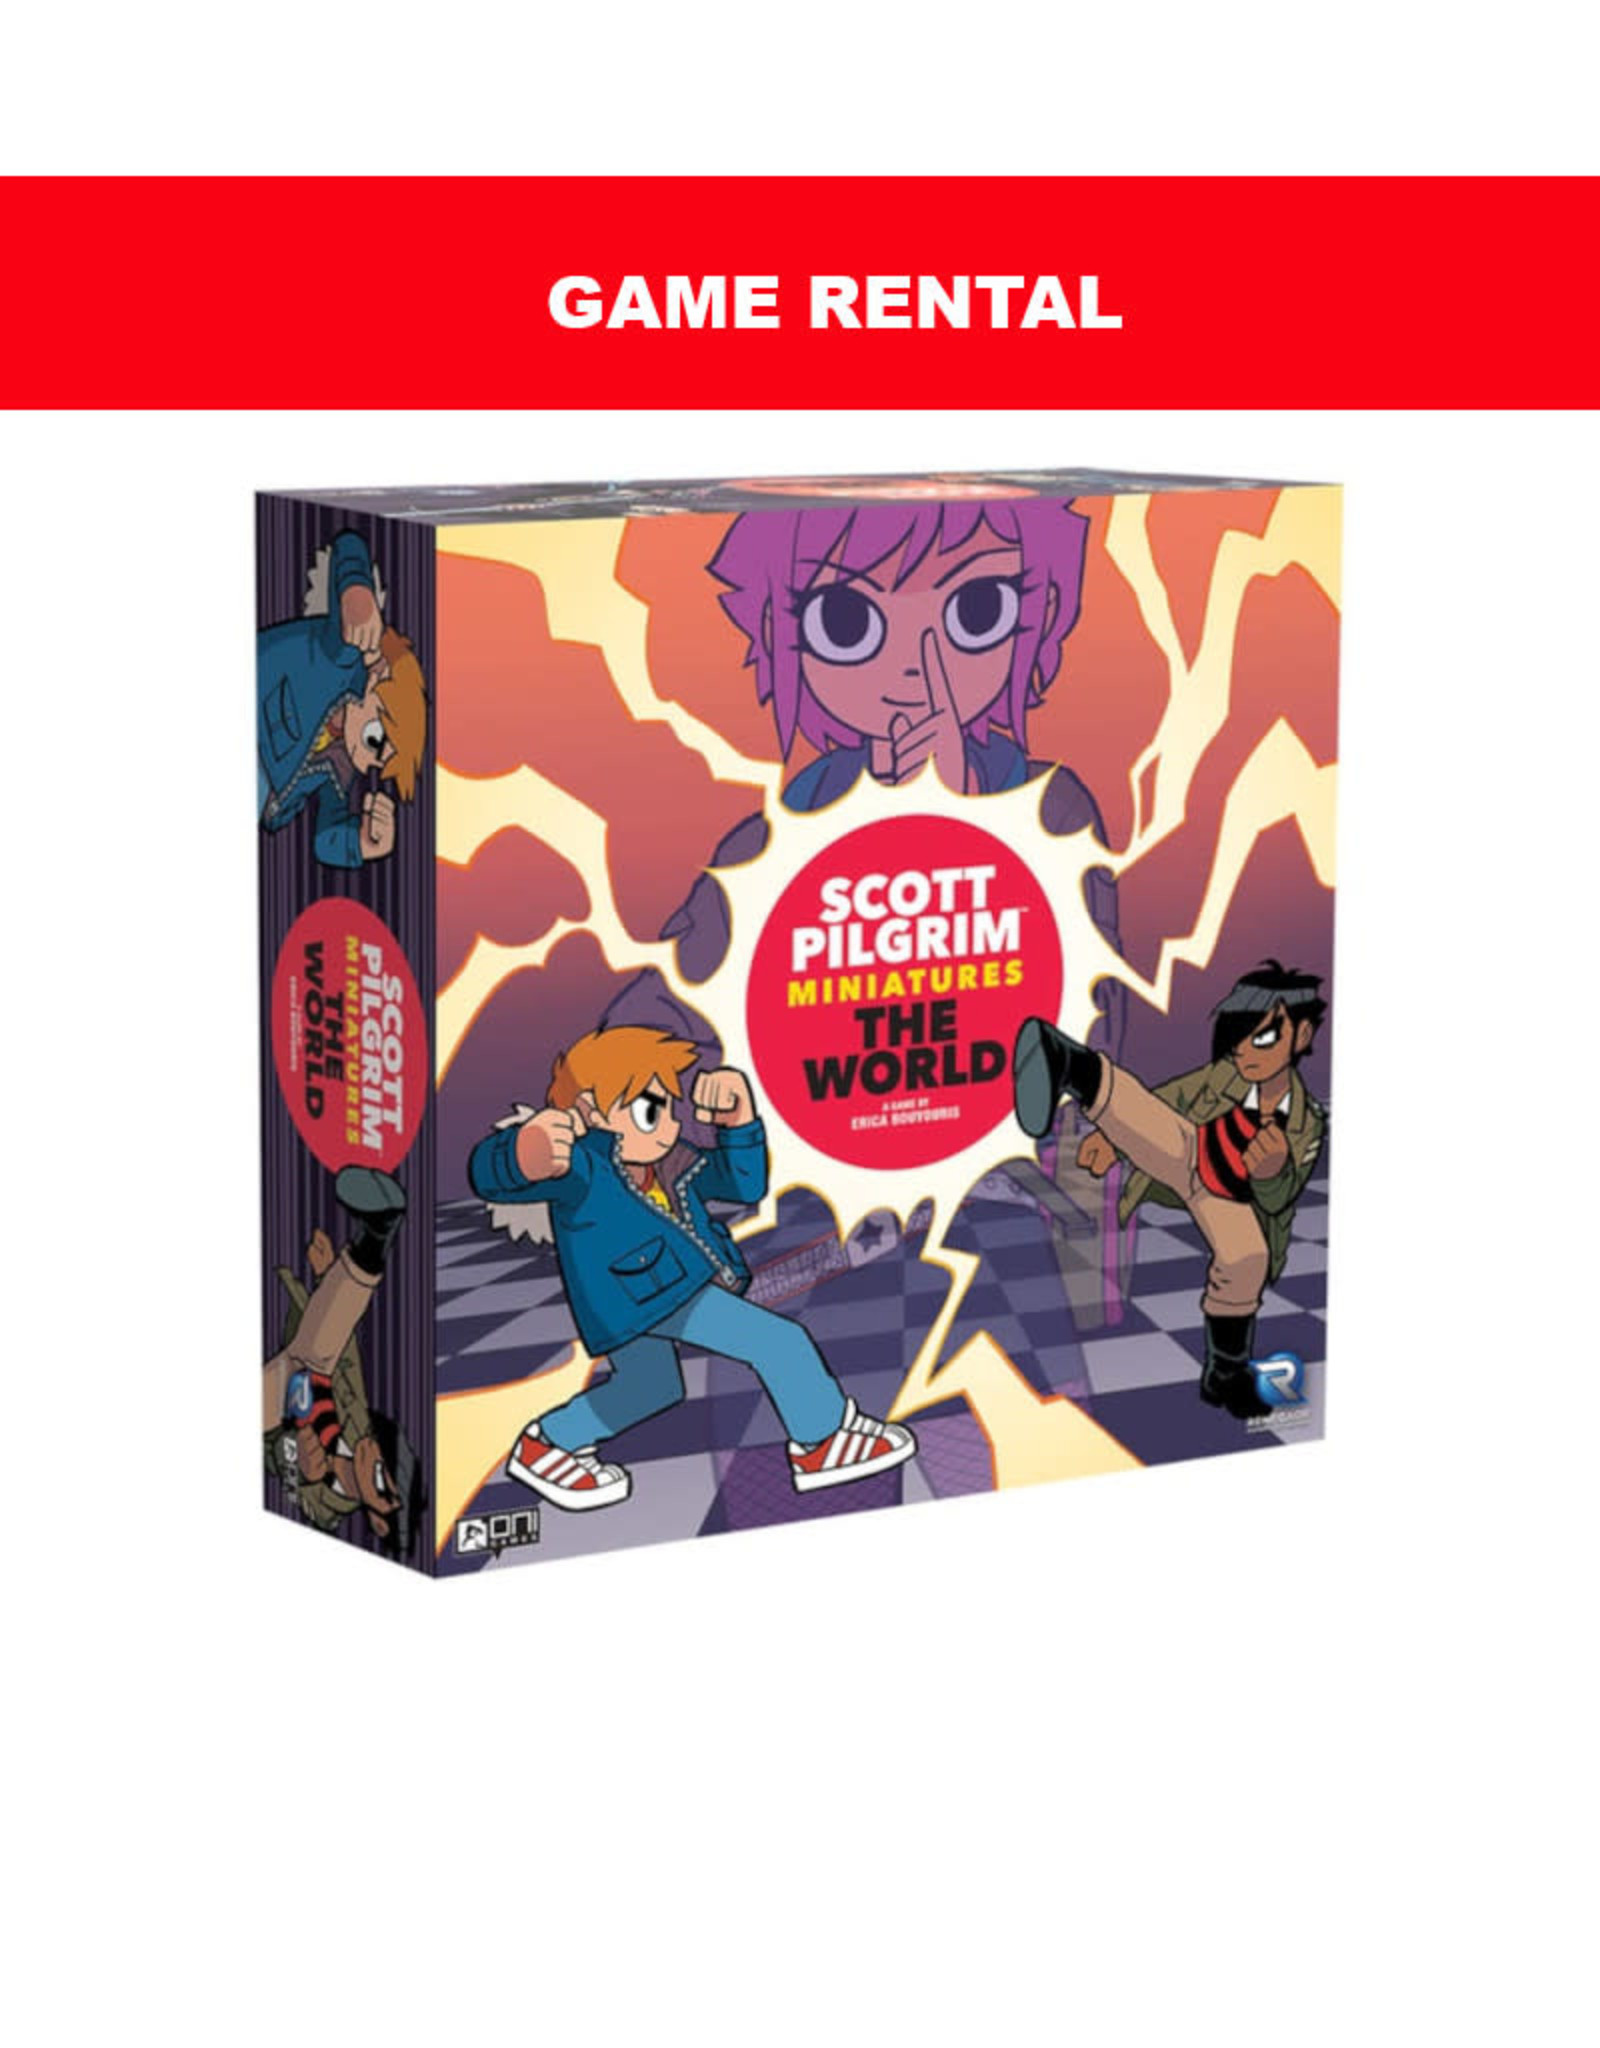 Renegade Games (RENT) Scott Pilgrim Miniatures Game For a Day. Love It! Buy It!